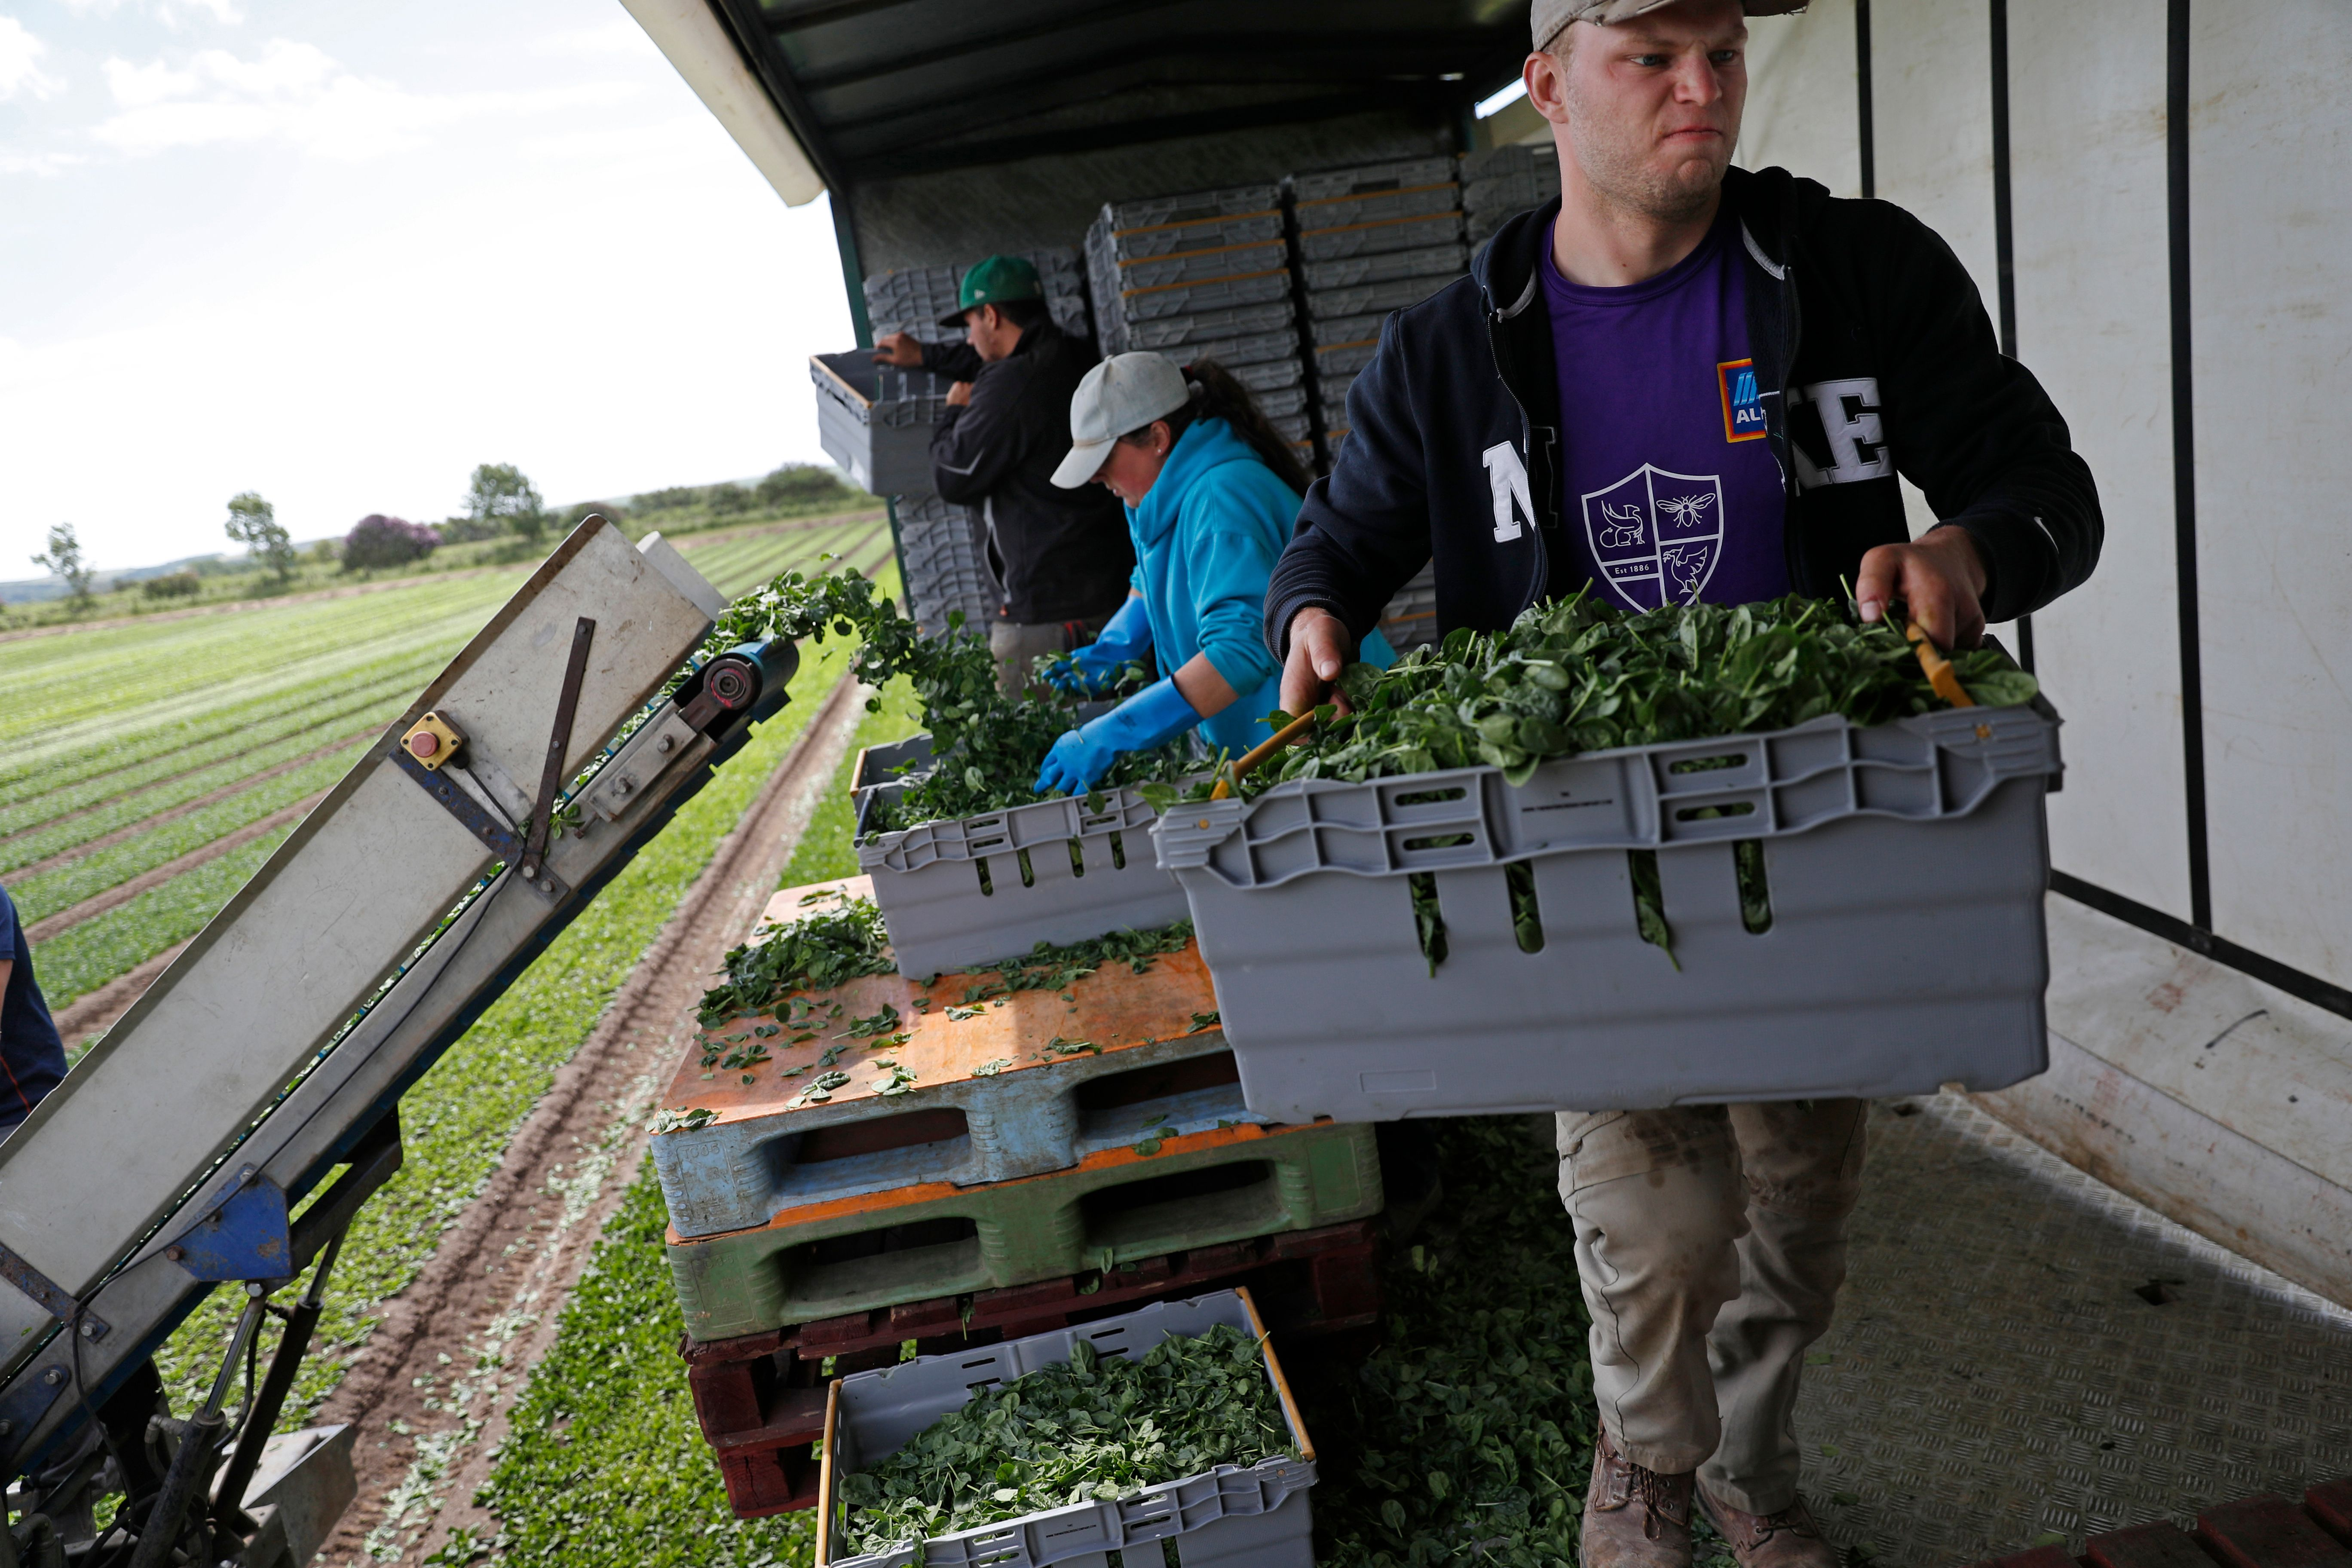 Jack Hargreaves (R) carries a full crate as the UK Seasonal Relief Team working for The Watercress Company looks on as they harvest spinach on farmland near Dorchester, in southern England on June 5, 2020, during the novel coronavirus COVID-19 pandemic. - The company have found it difficult to find staff since the Coronavirus pandemic, due to a shortage of seasonal workers from abroad, managing director Tom Amery said. (Photo by ADRIAN DENNIS / AFP) (Photo by ADRIAN DENNIS/AFP via Getty Images)